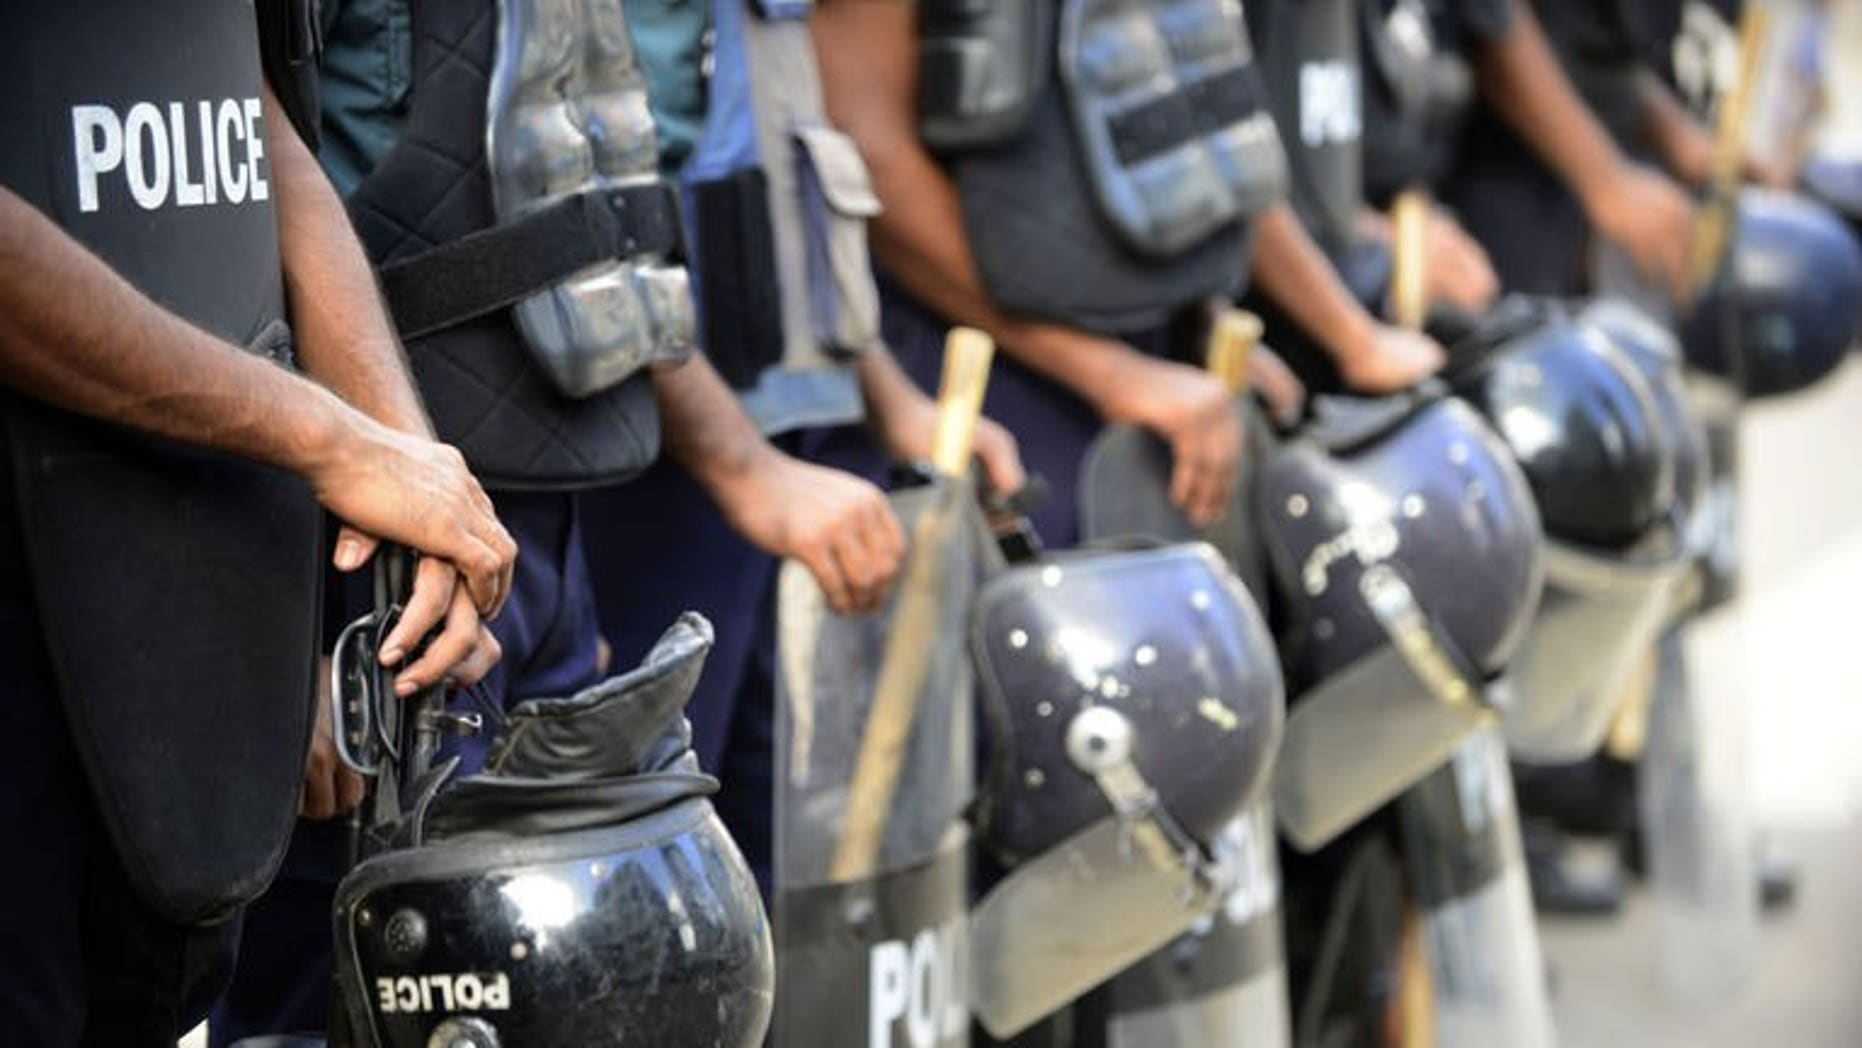 Bangladeshi police stand guard during a nationwide strike called by the Jumaat-e-Islami party in Dhaka, on August 13, 2013. Bangladesh police have fired rubber bullets and tear gas at supporters of the country's largest Islamist party as they protested against a ban preventing it from contesting next year's general elections.